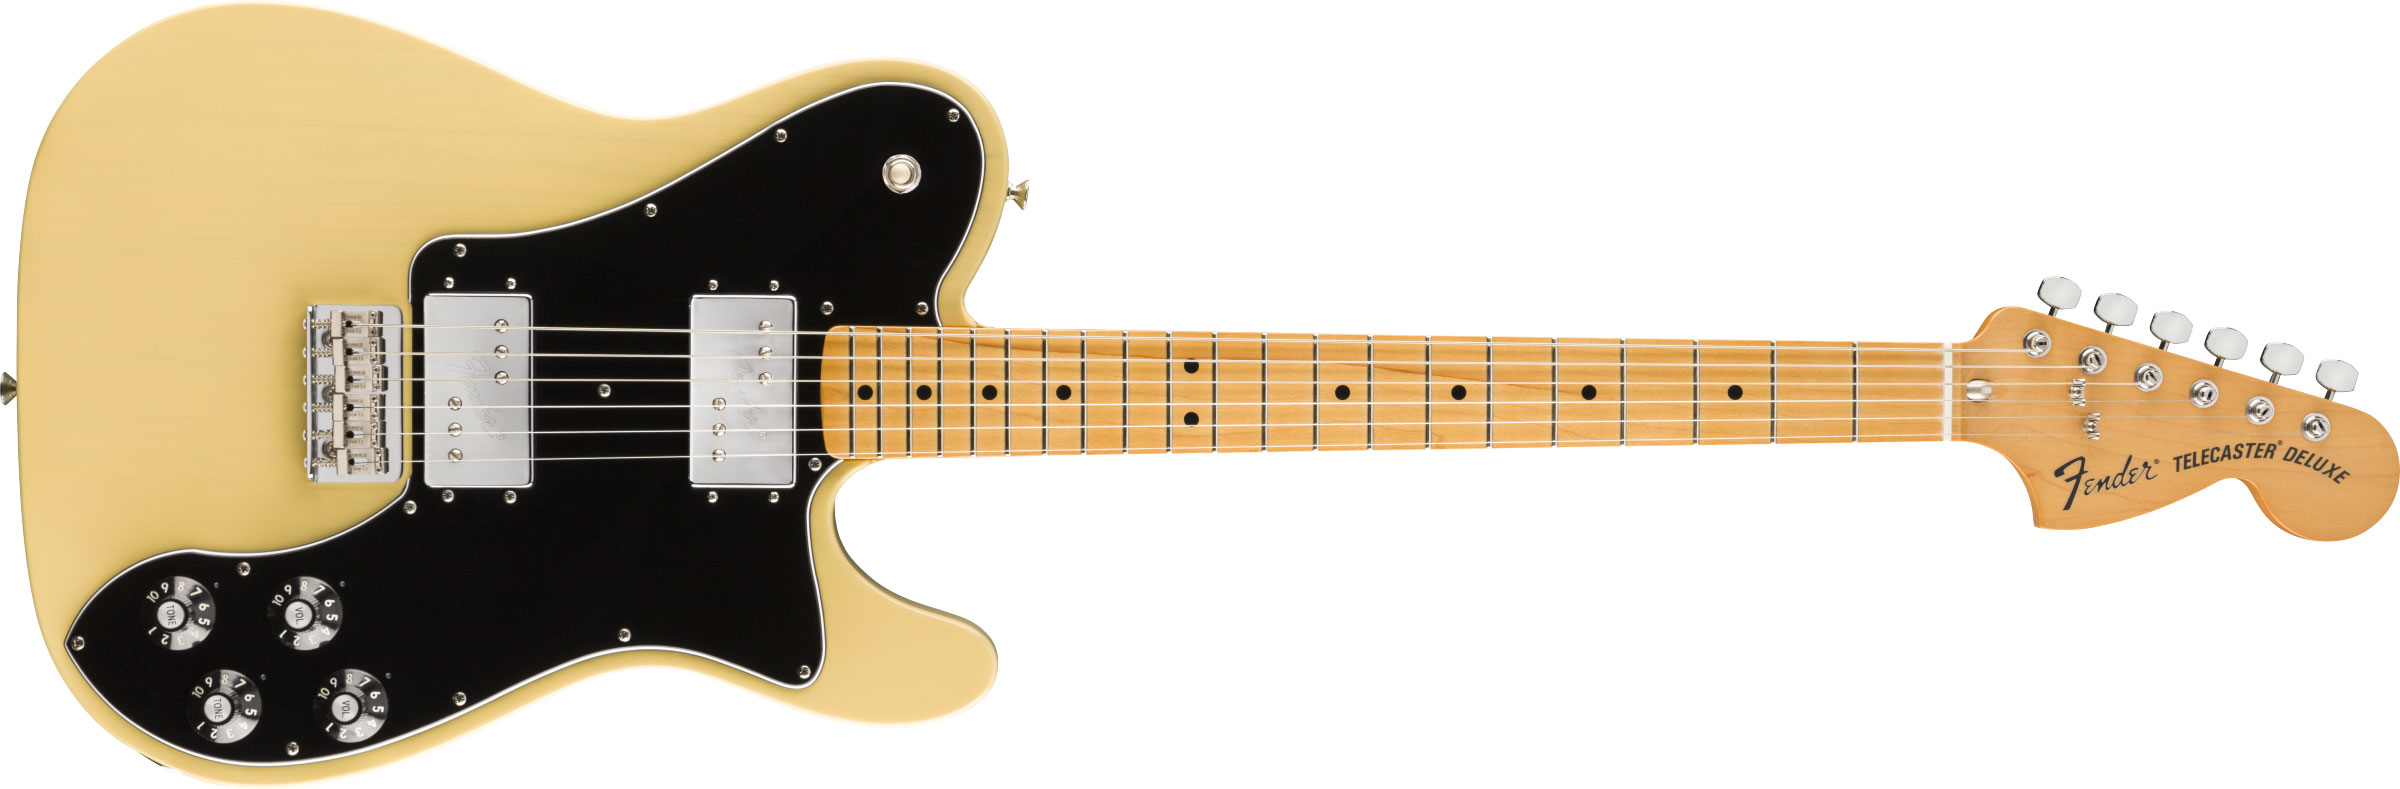 GUITARRA FENDER VINTERA 70S TELE DELUXE MAPLE 014-9812-307 VINTAGE BLONDE